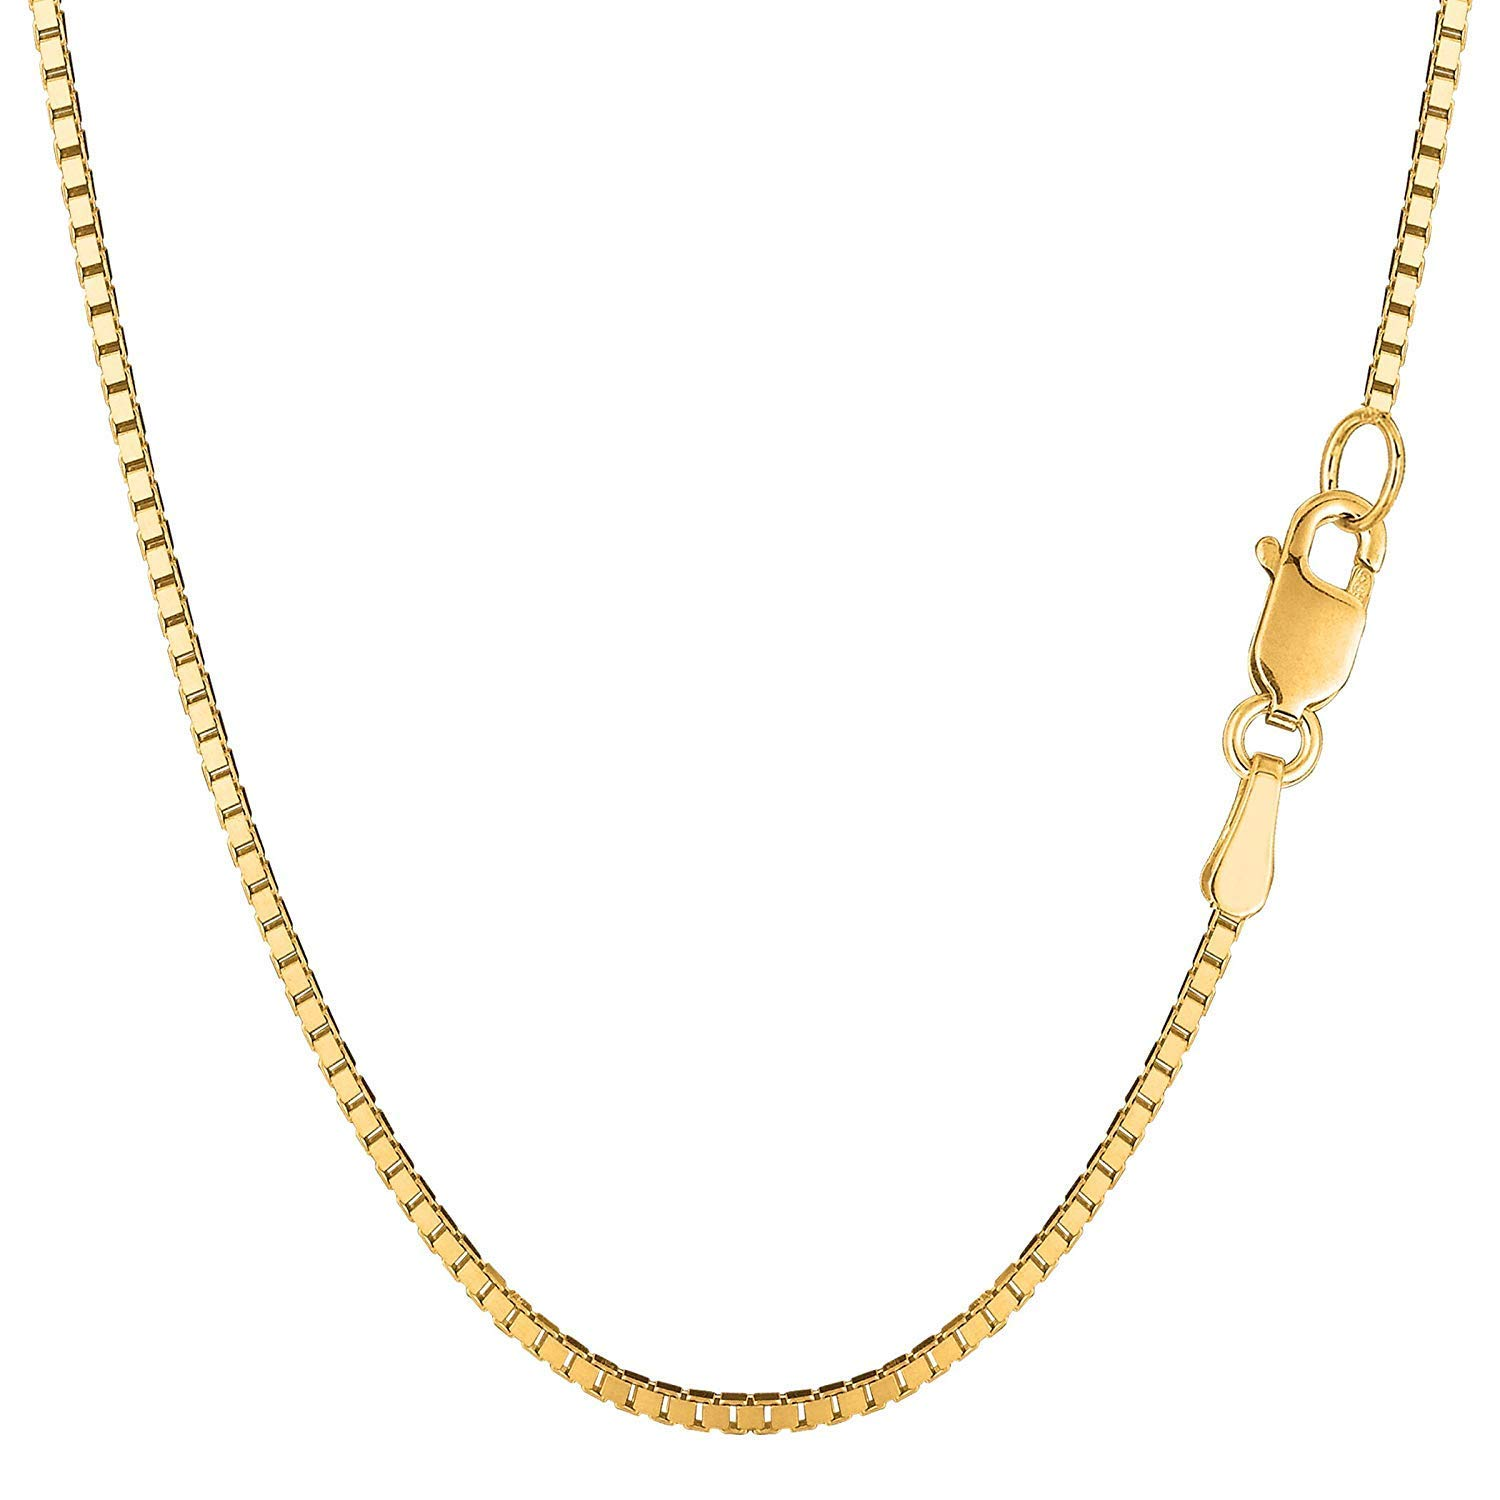 14K Yellow Gold 1.6mm Shiny Classic Box Chain Necklace for Pendants and Charms with Lobster Clasp (18'', 20'', 22'' 24'' or 30 inch